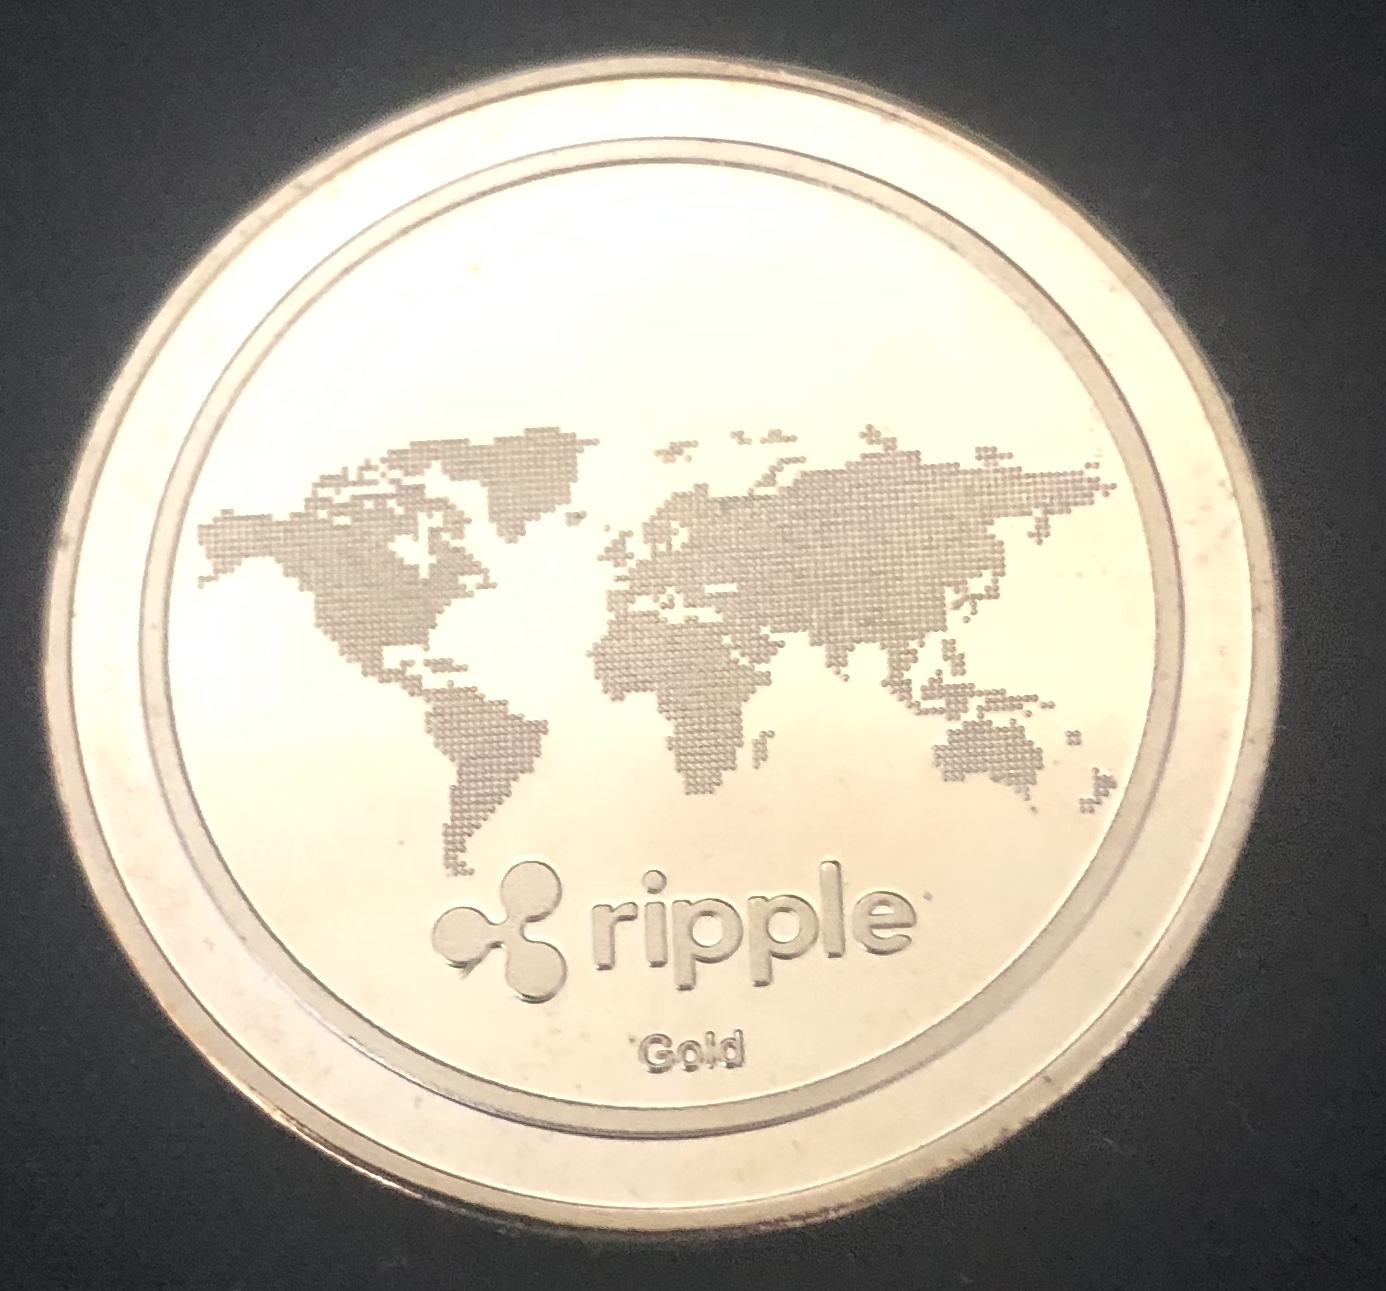 xrp world currency coin